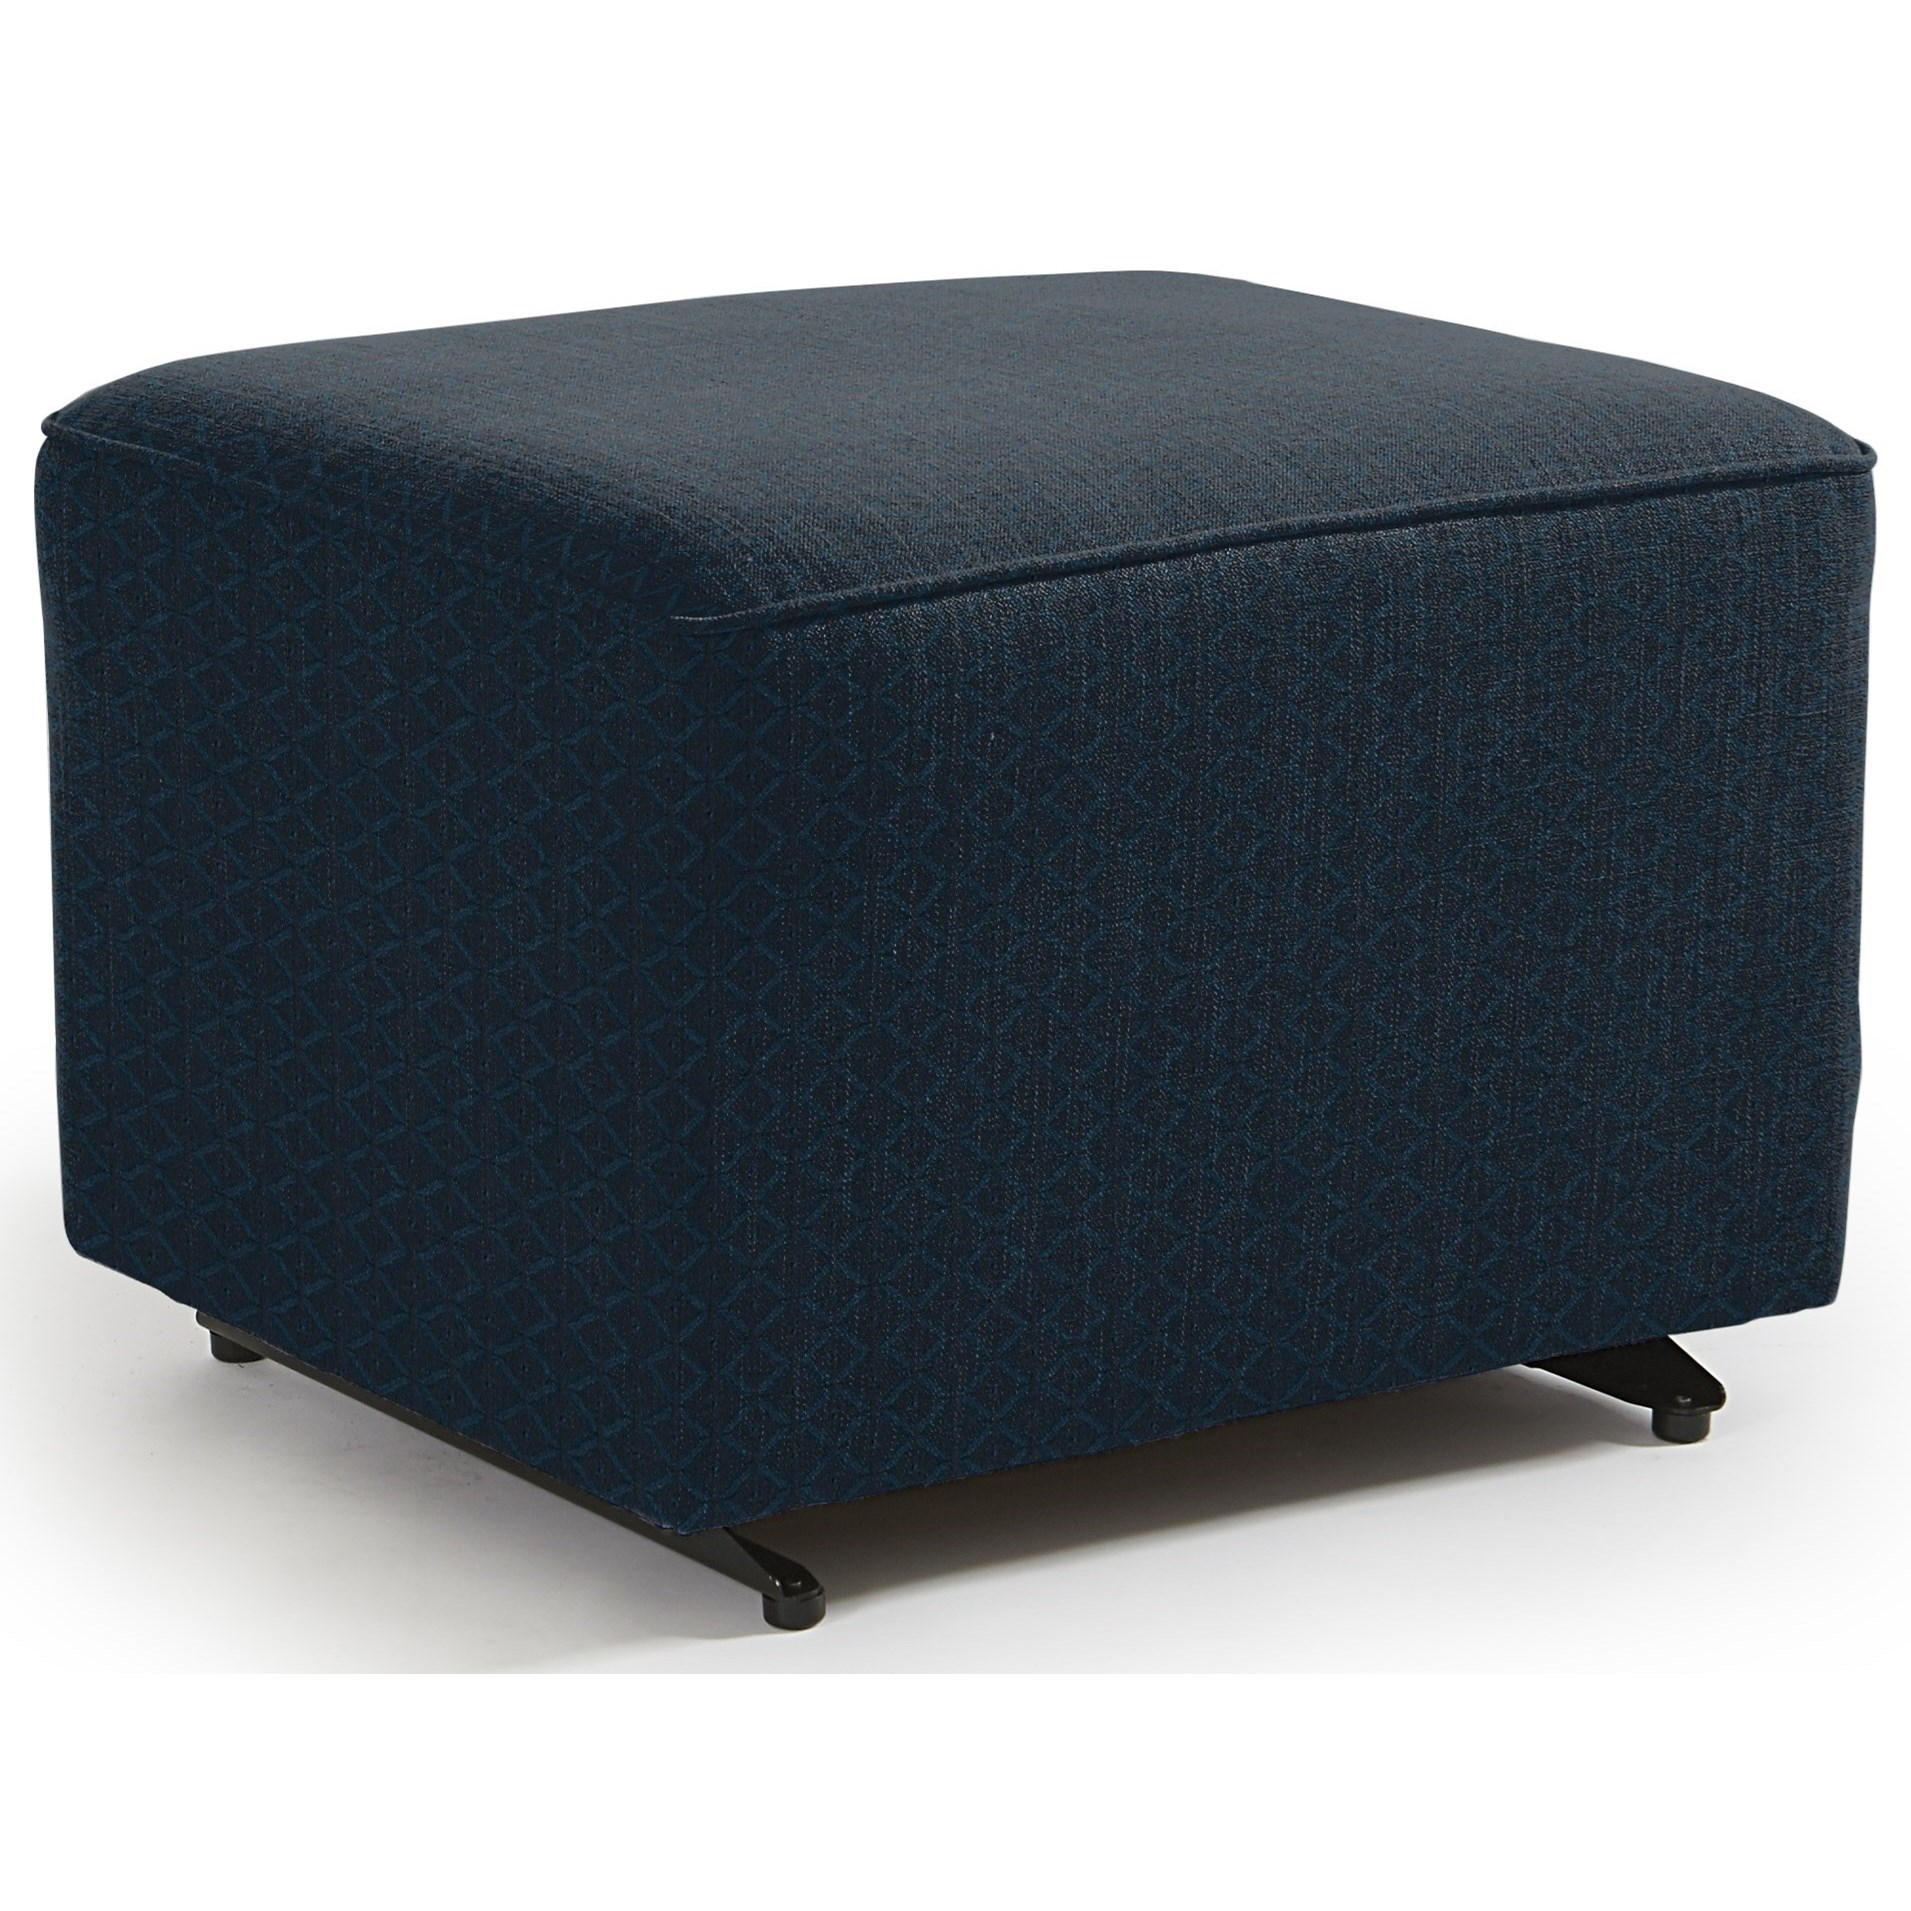 Kacey Ottoman W/ Glider Base by Best Home Furnishings at Steger's Furniture